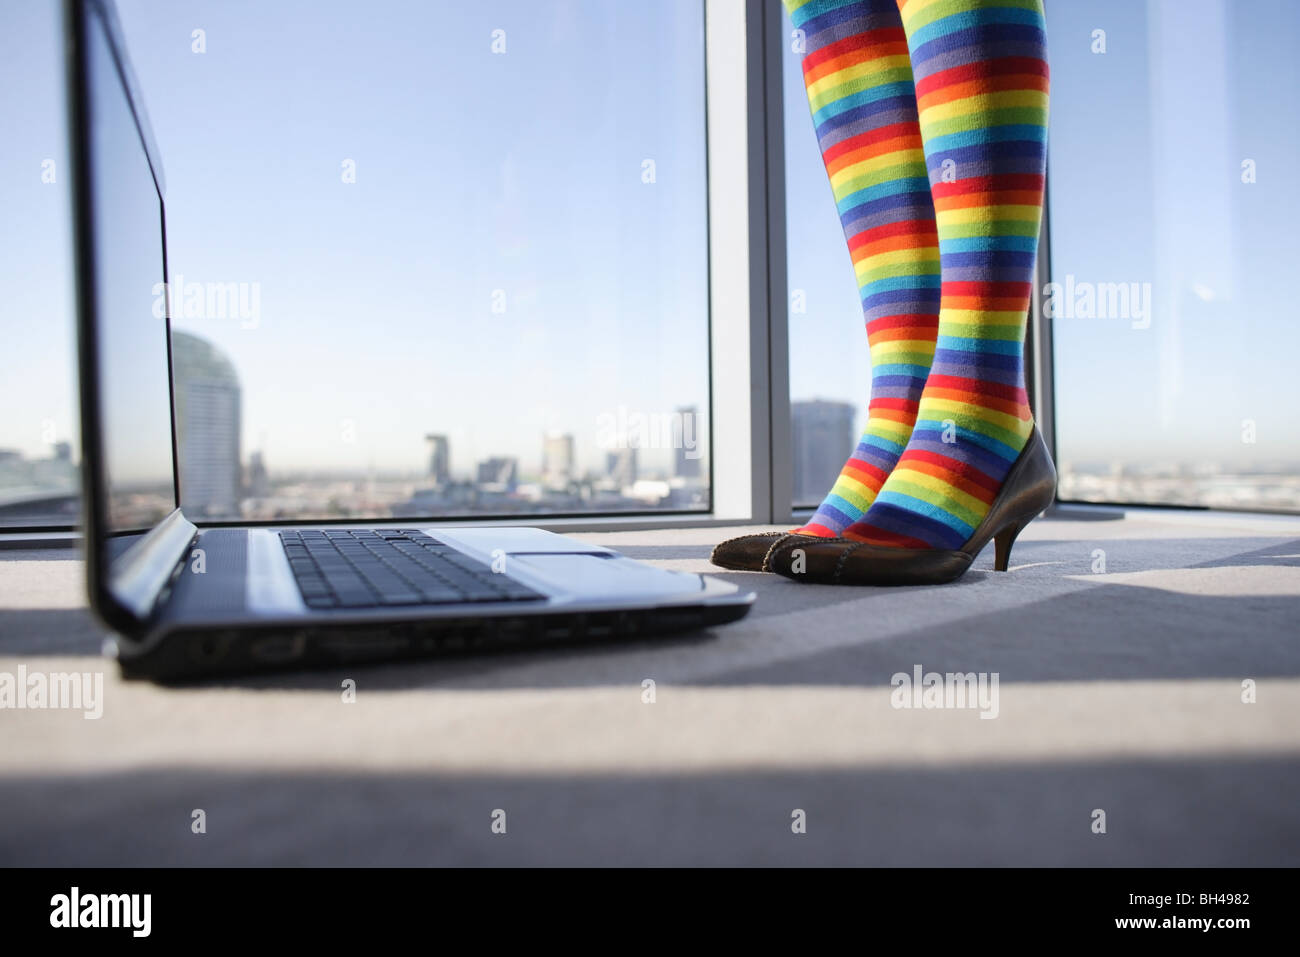 A woman's legs wearing multi colored striped stockings standing next to a laptop computer in an office - Stock Image